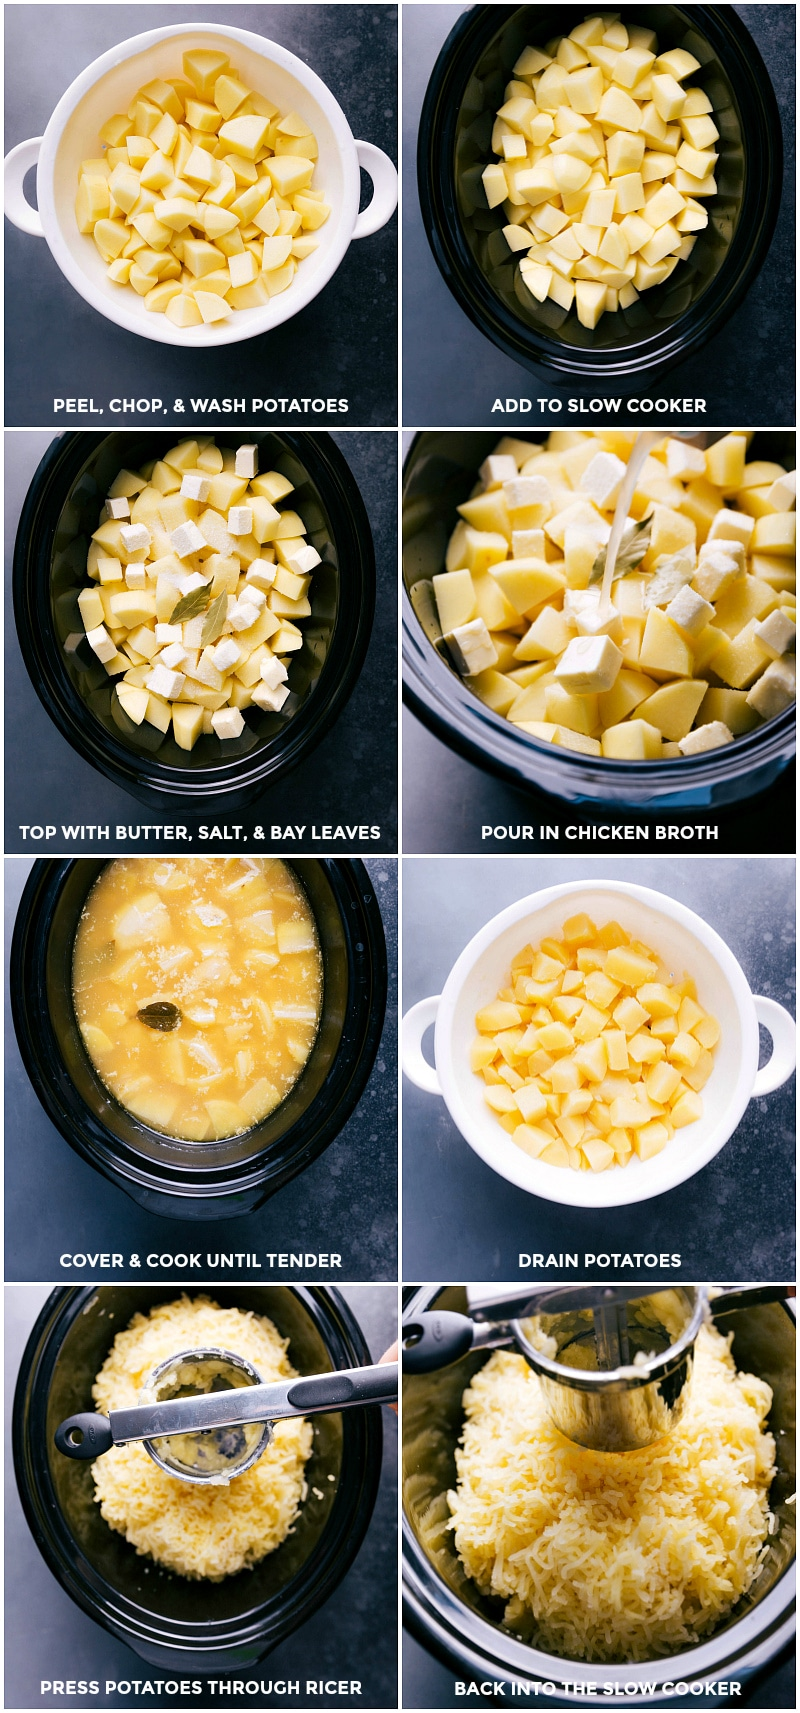 Process shots-- images of the chopped potatoes being added to a slow cooker; butter, salt and bay leaves added, along with chicken broth; cover and cook; drain and press potatoes through a ricer; return to cooker.